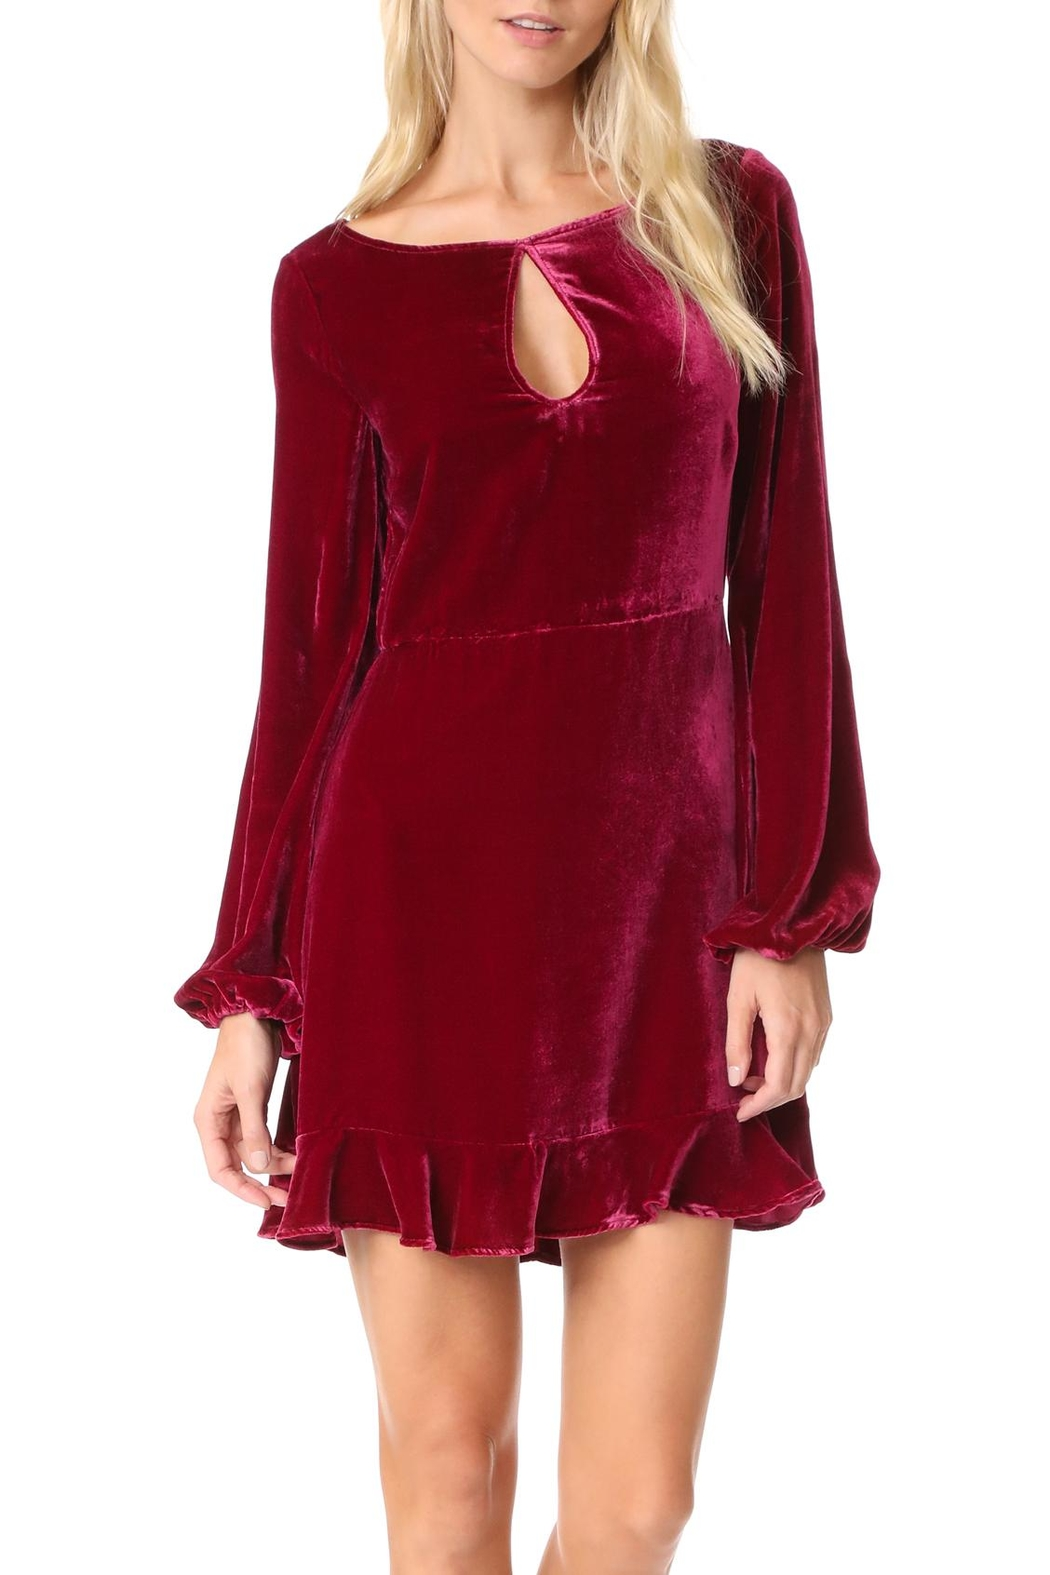 FOR LOVE & LEMONS Velvet Mini Dress - Main Image